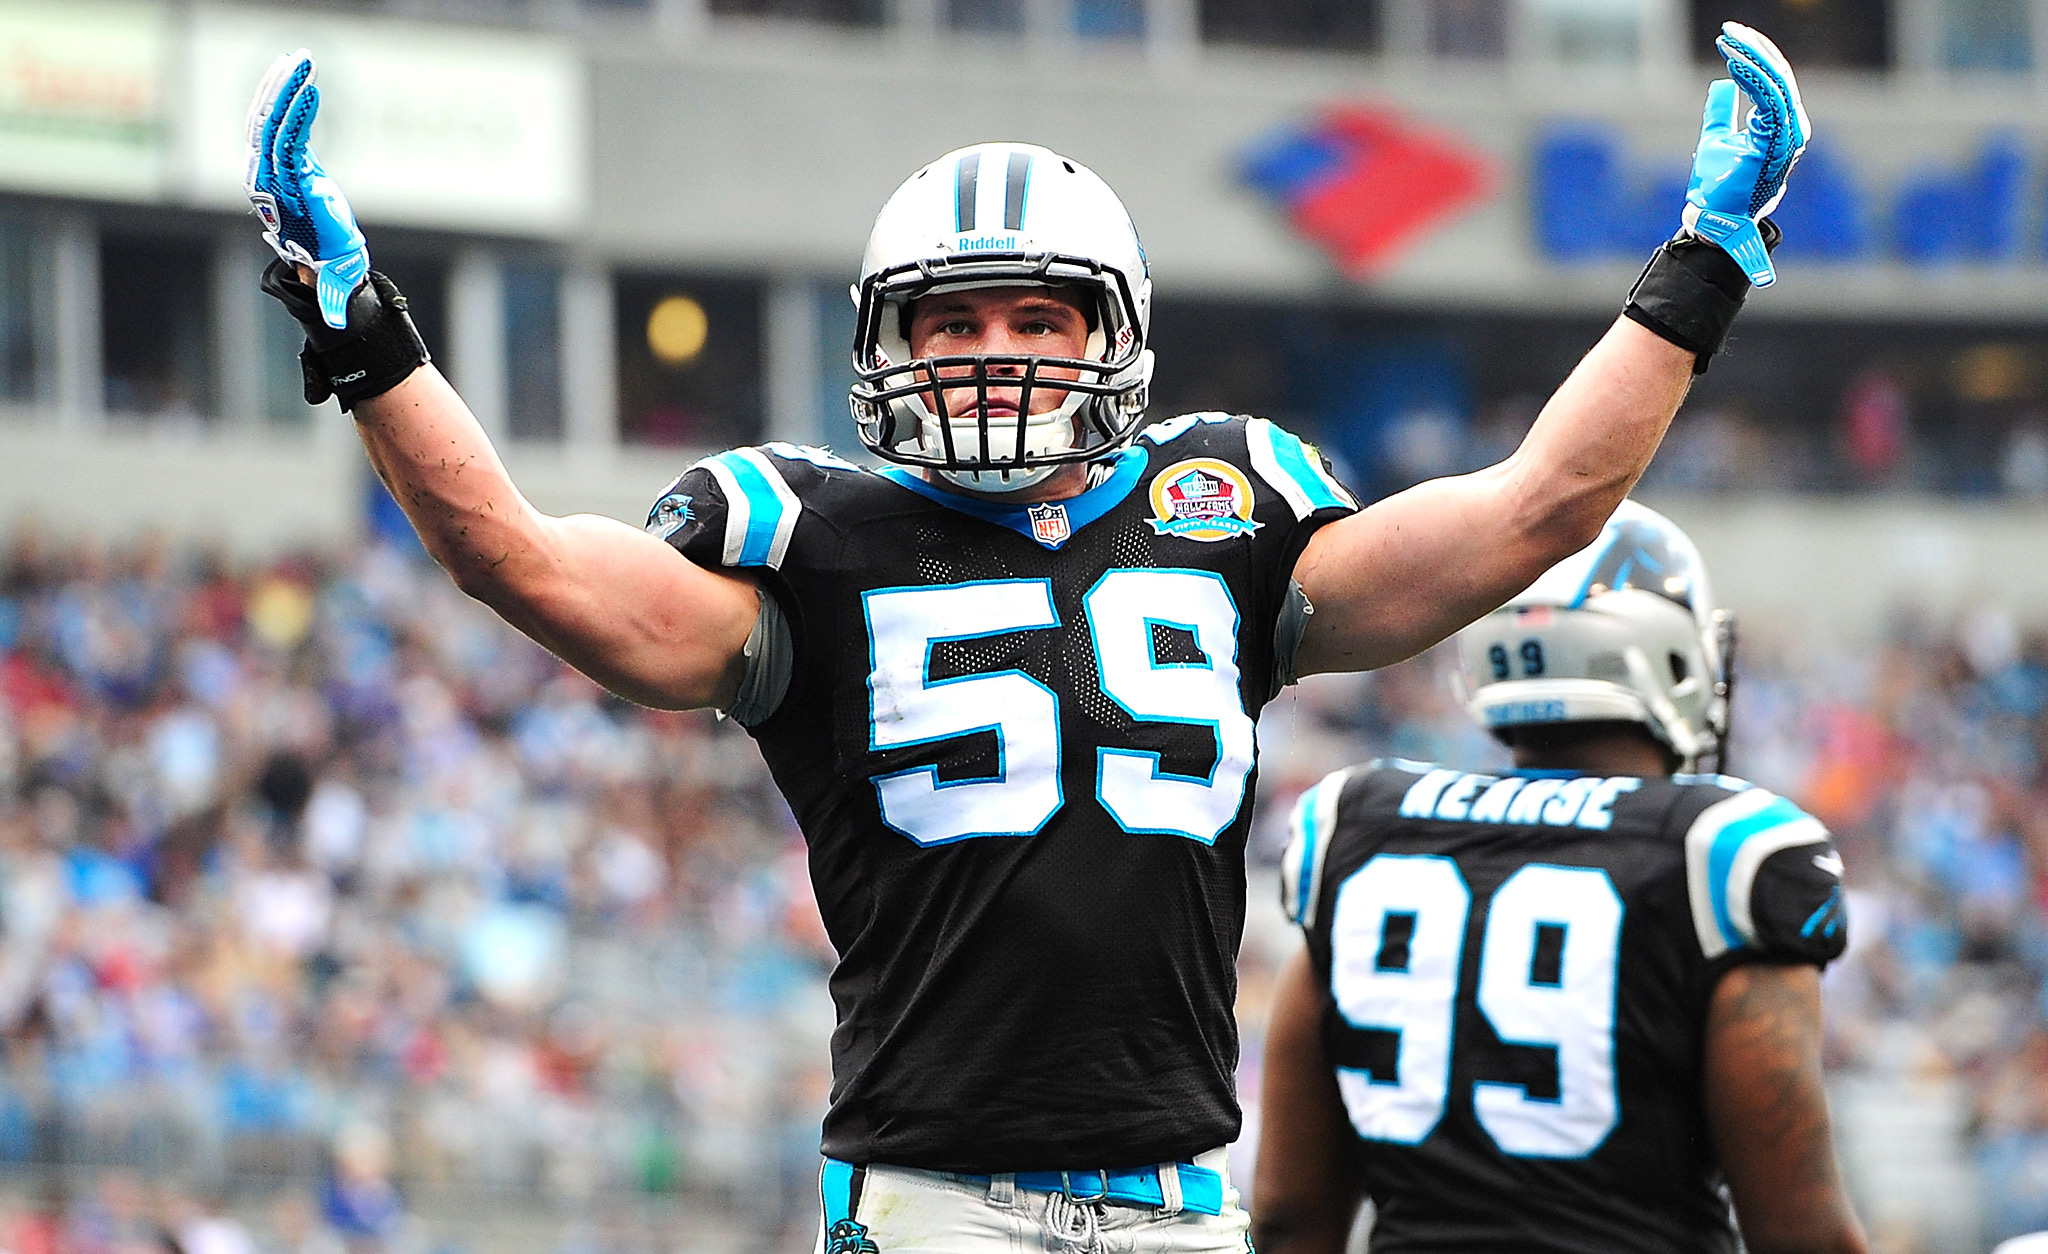 Luke Kuechly Wallpapers High Quality Download 2048x1254